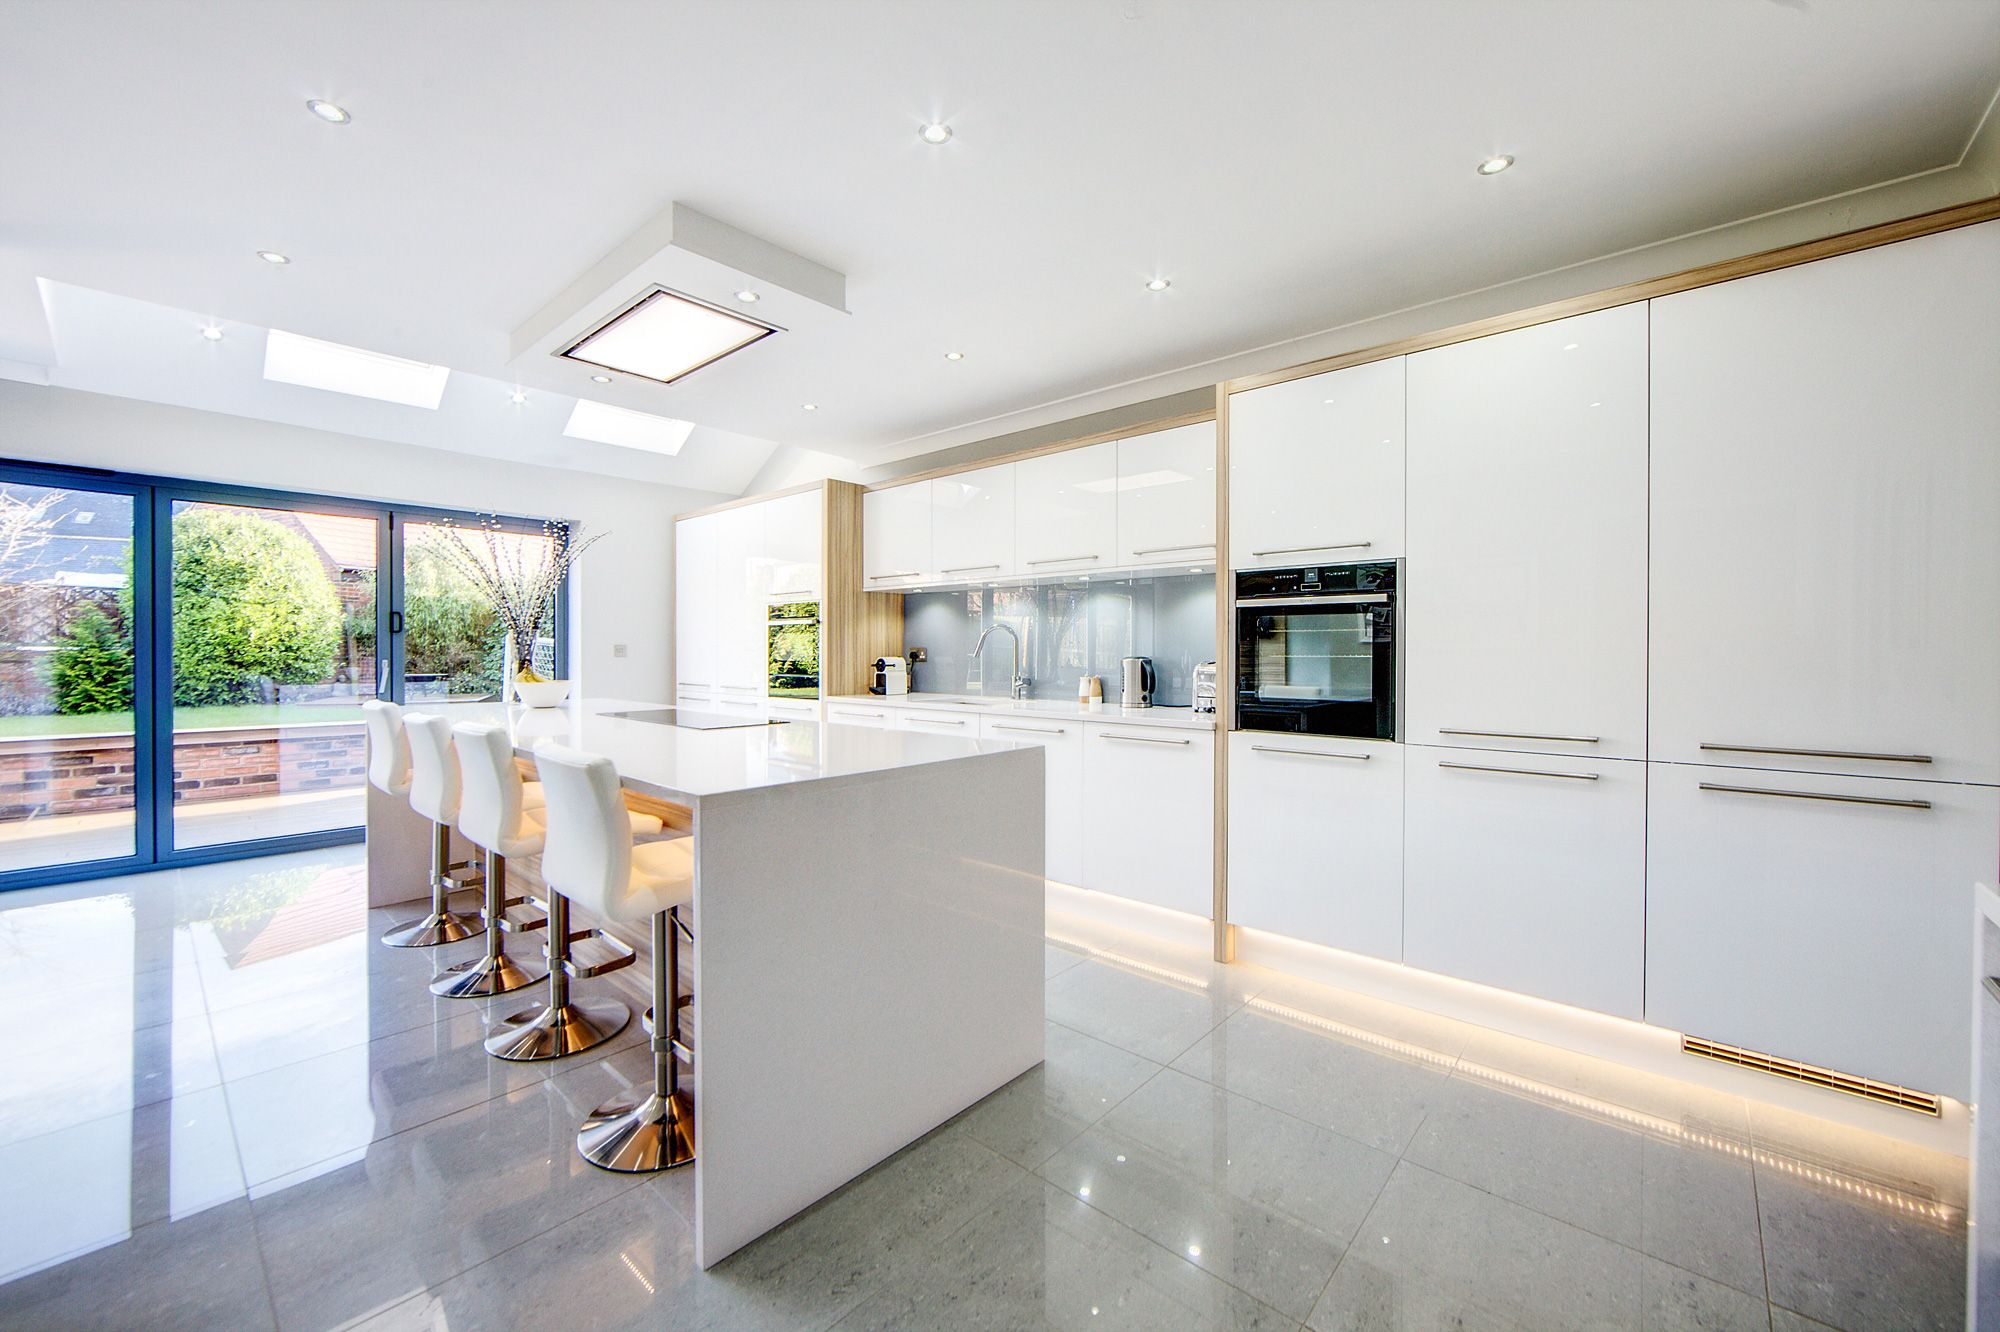 Awesome Bulldog Kitchens | Kitchen Designer Newcastle | Kitchen Designer North East  | Bespoke Kitchen Design Newcastle